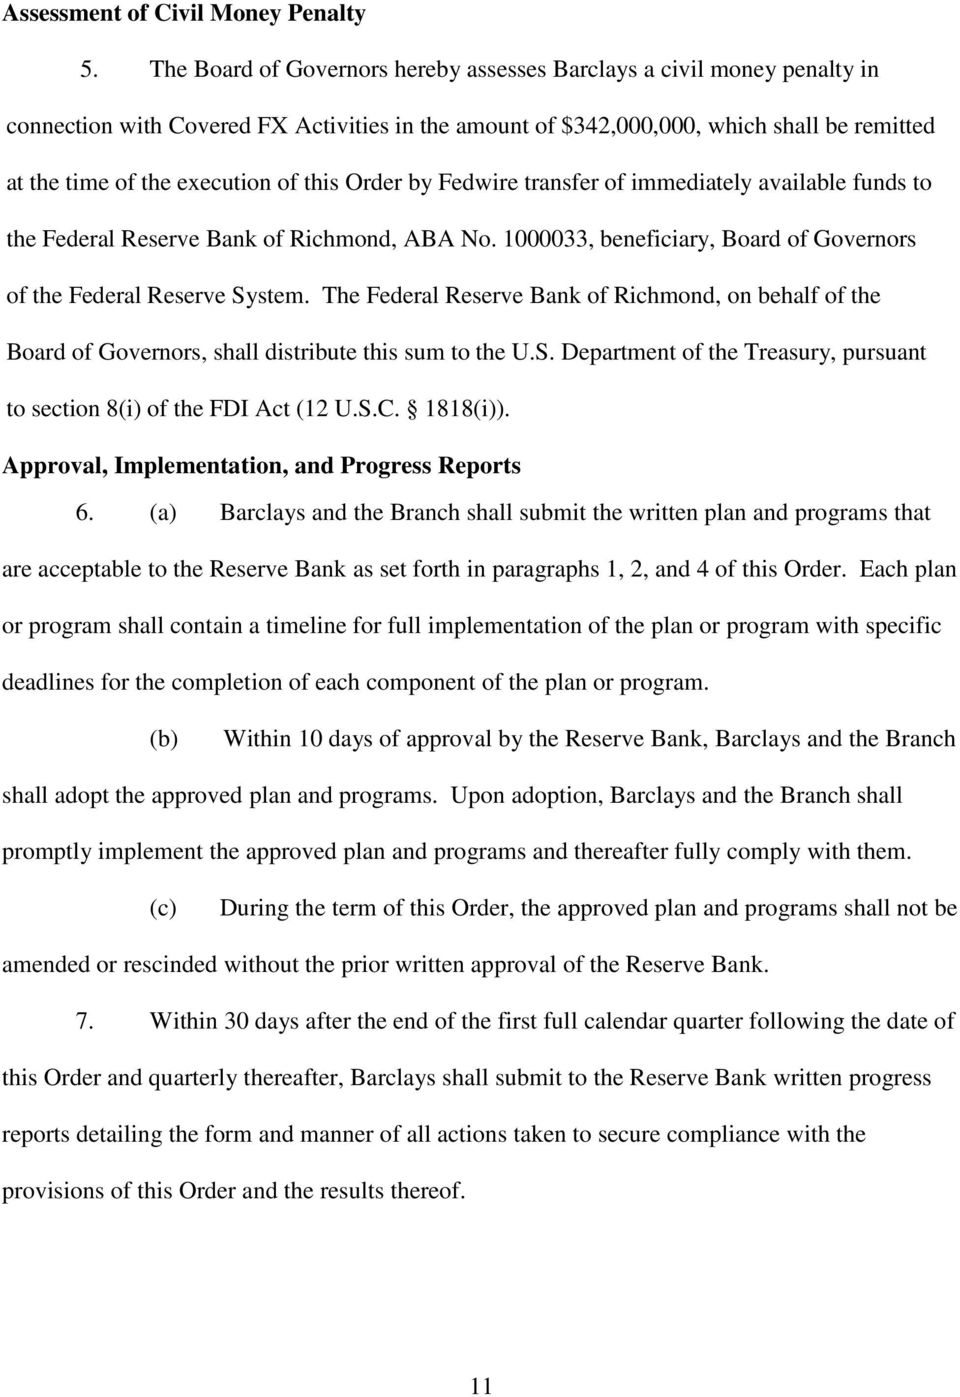 this Order by Fedwire transfer of immediately available funds to the Federal Reserve Bank of Richmond, ABA No. 1000033, beneficiary, Board of Governors of the Federal Reserve System.